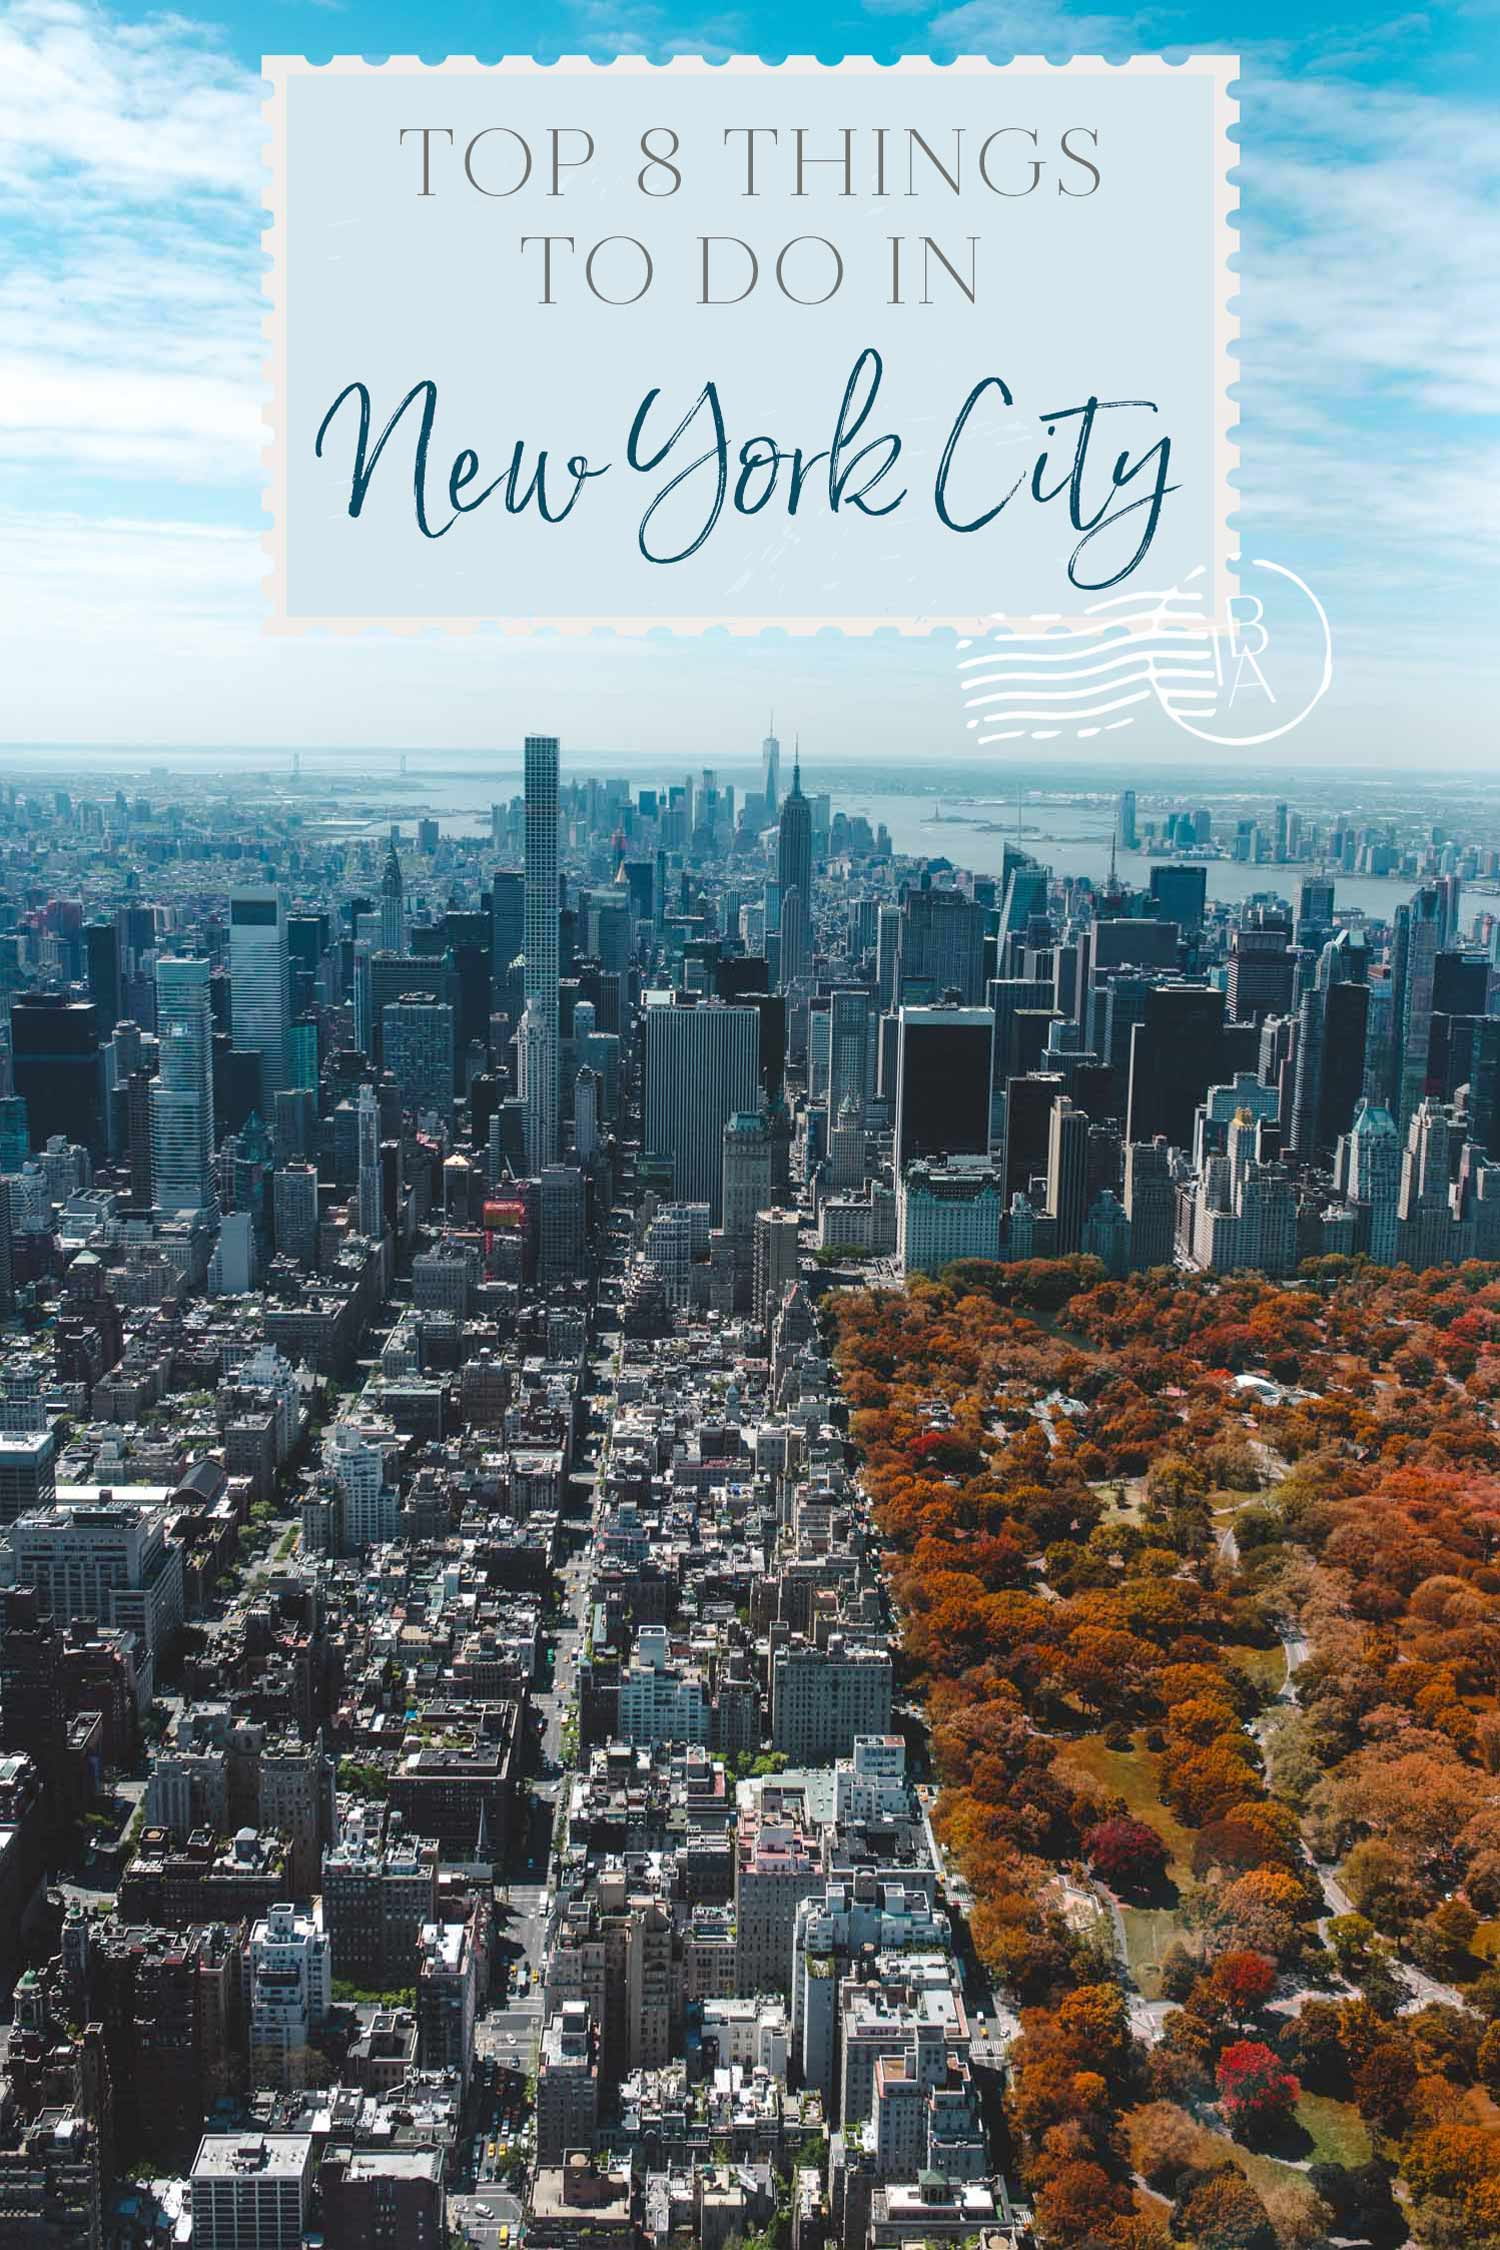 Top 8 Things To Do In New York City The Blonde Abroad